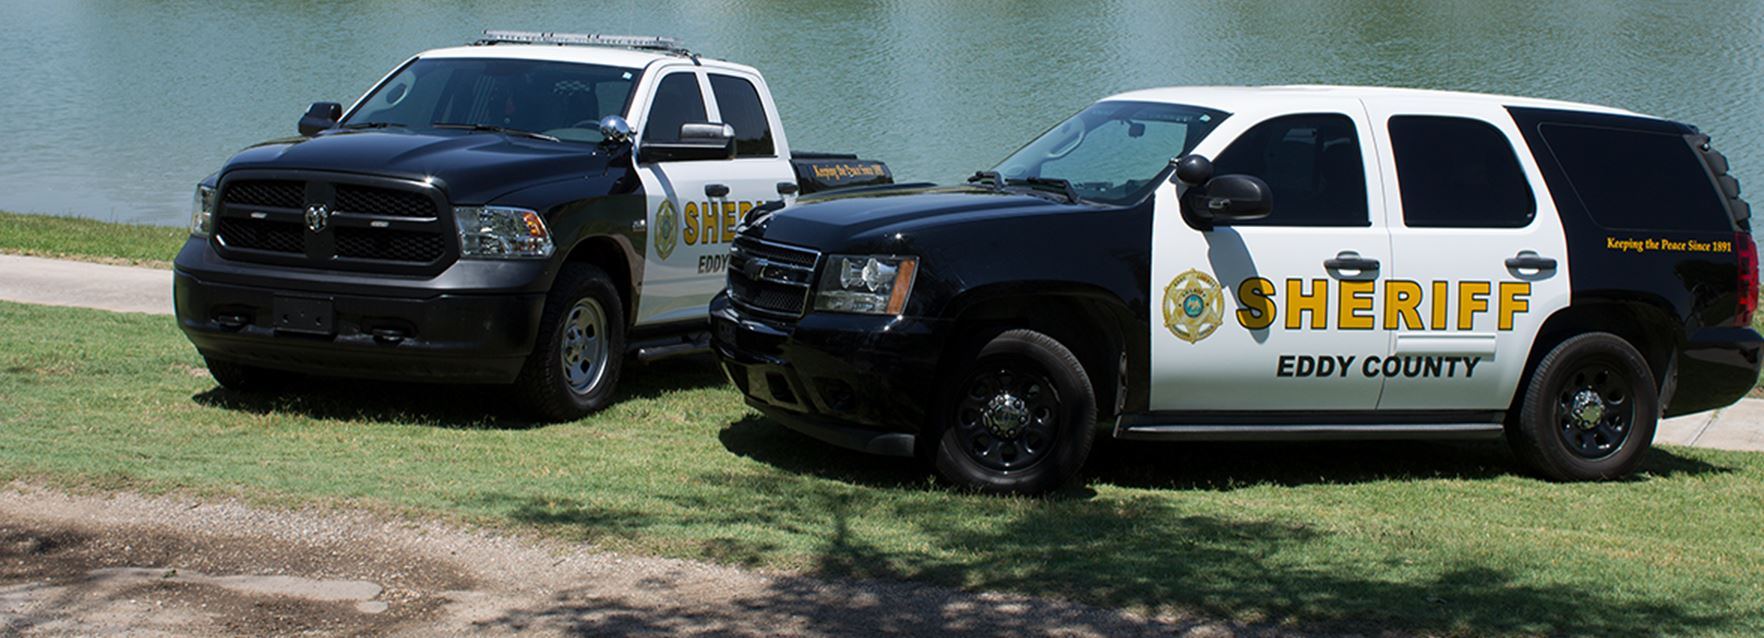 Eddy County Sheriff vehicles